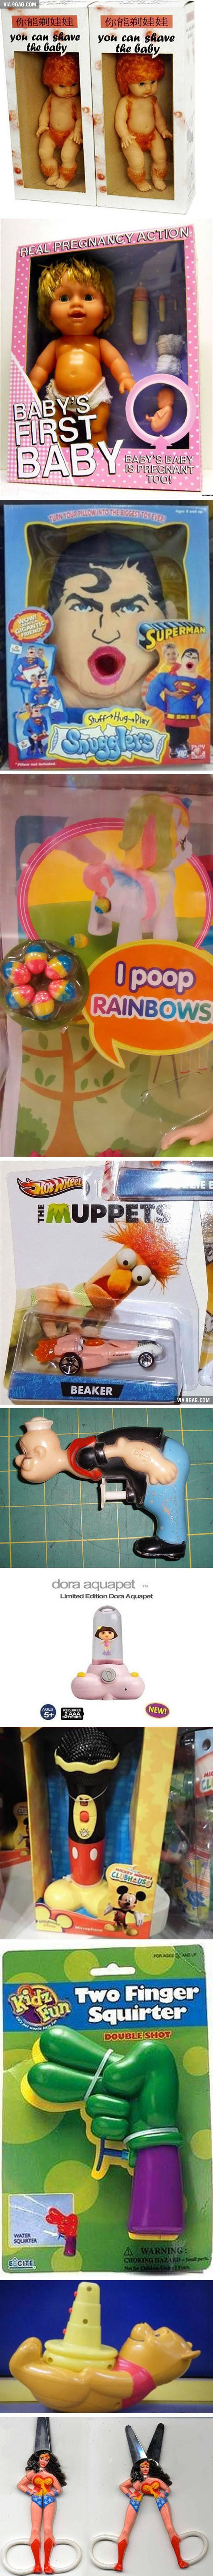 Kid Toys Which Are So Sexually Inappropriate That They Make Even Adults Feel Uncomfortable